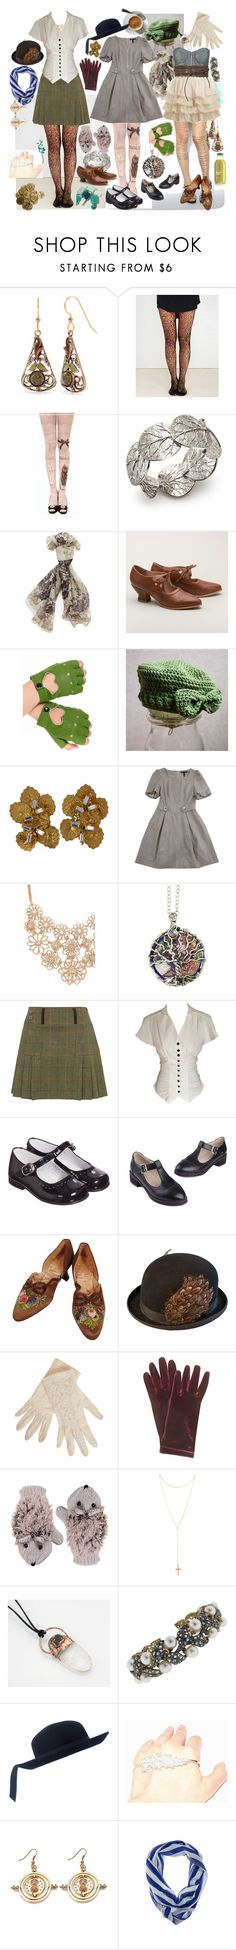 """""""The Fall"""" by amanda-anda-panda ❤ liked on Polyvore featuring Silver Forest, Wet Seal, Michael Aram, Valentino, Miriam Haskell, Forever 21, Forzieri, Buccellati and Essie"""